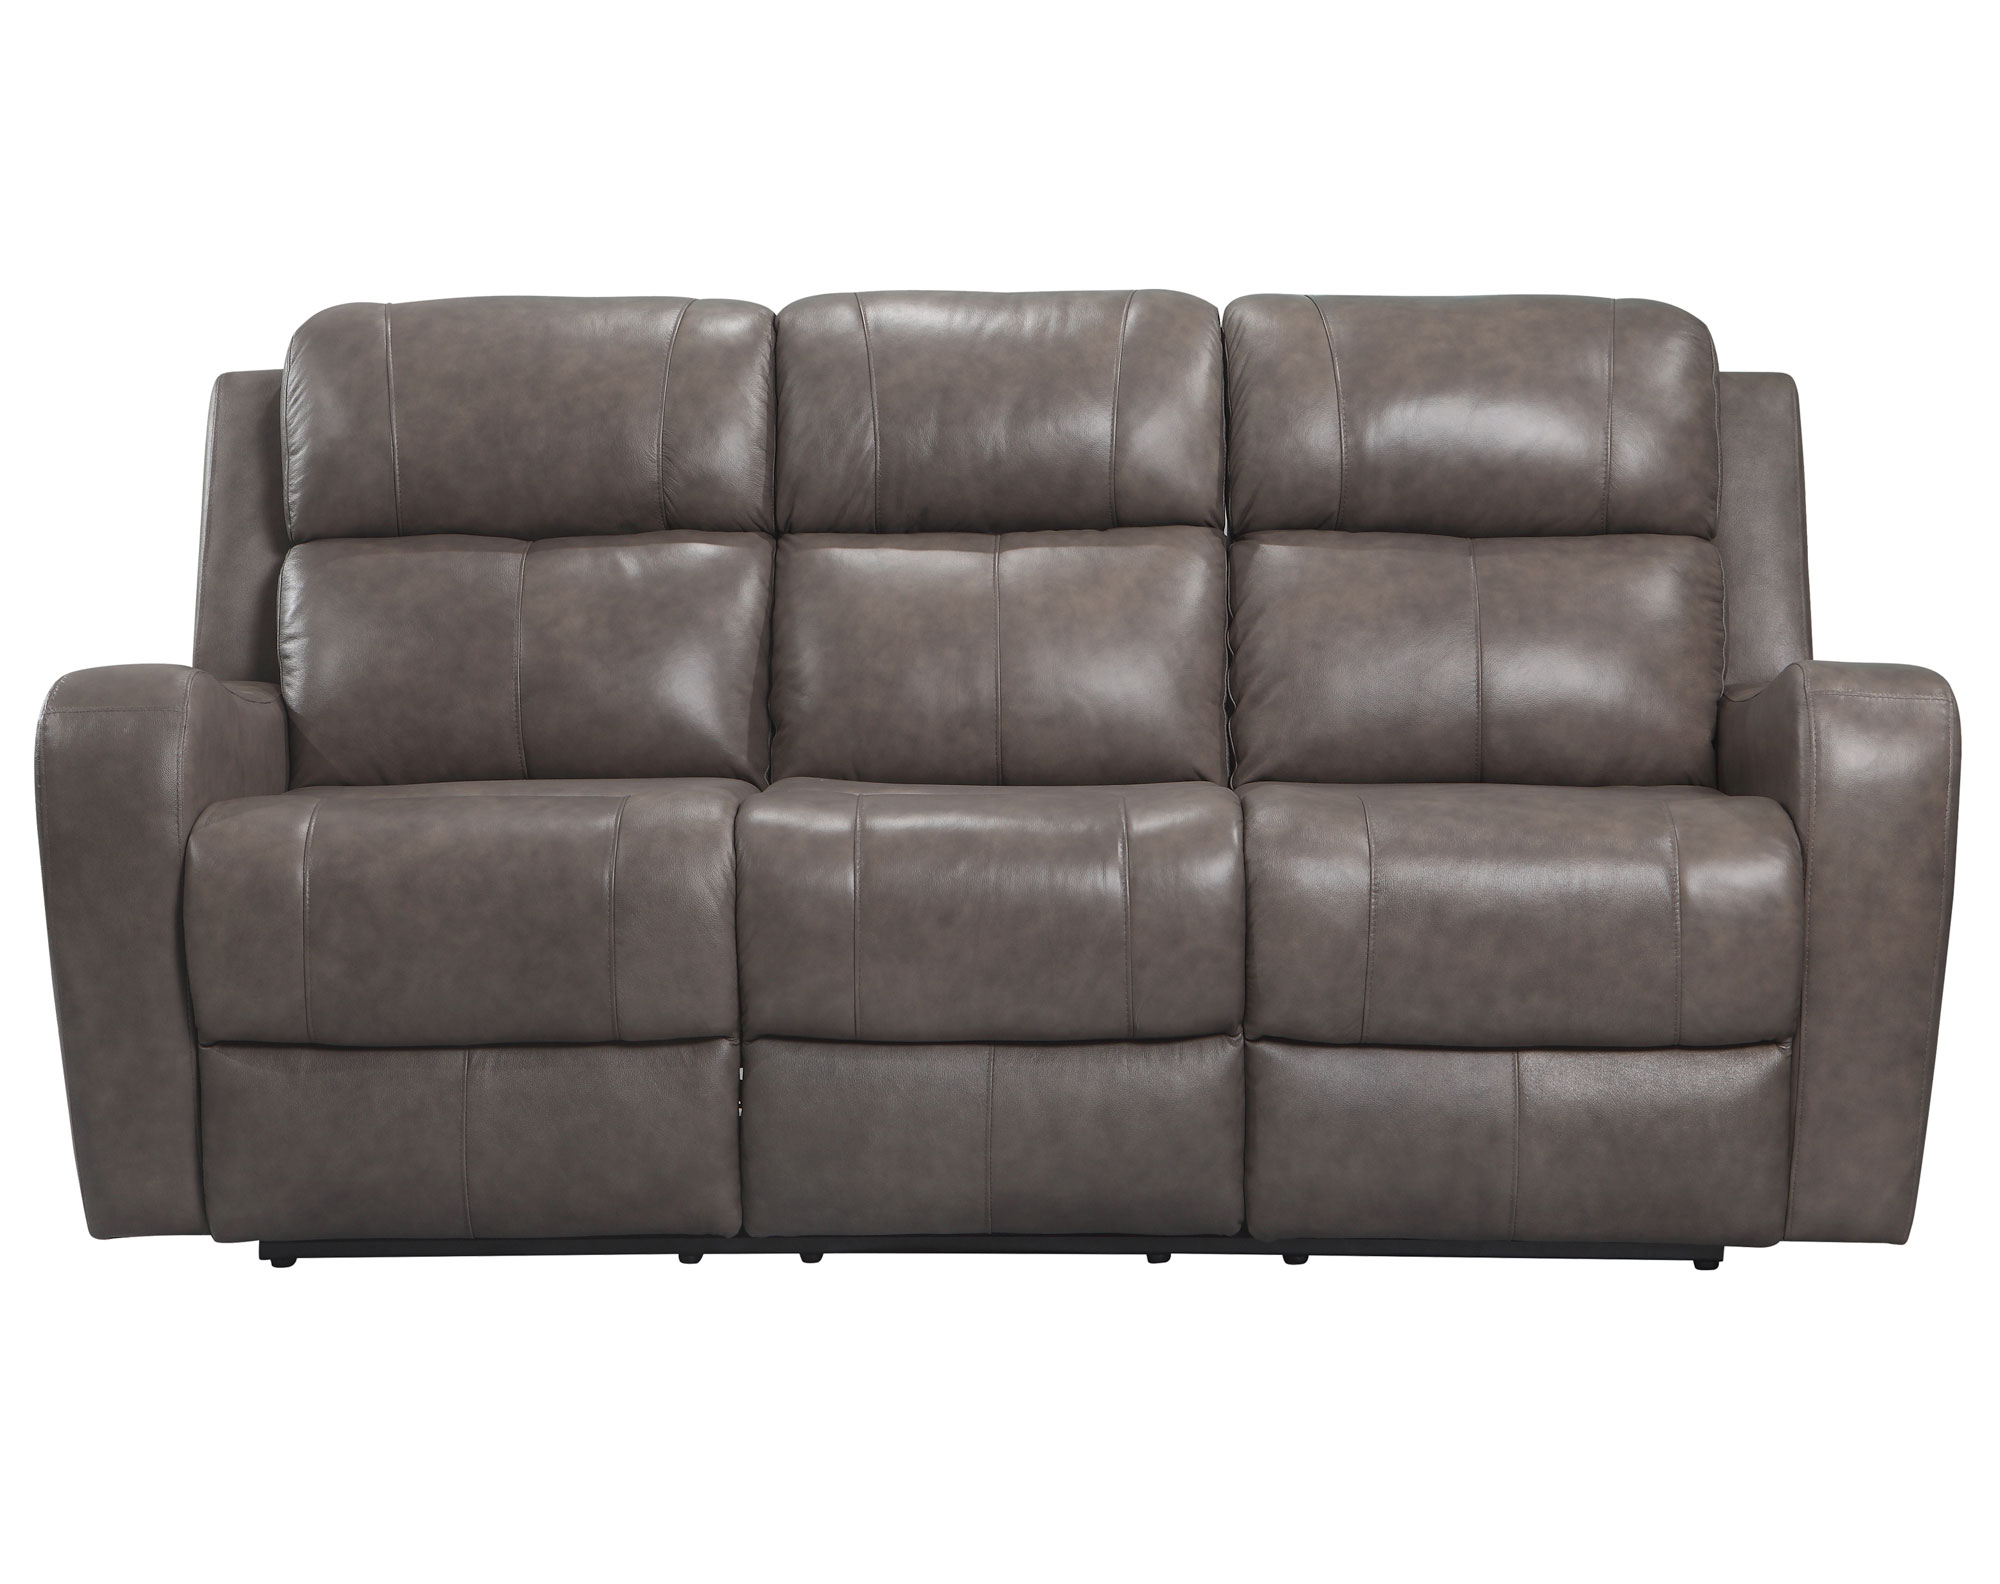 Cortana Power Leather Reclining Sofa (Stone) | Sofas and ...